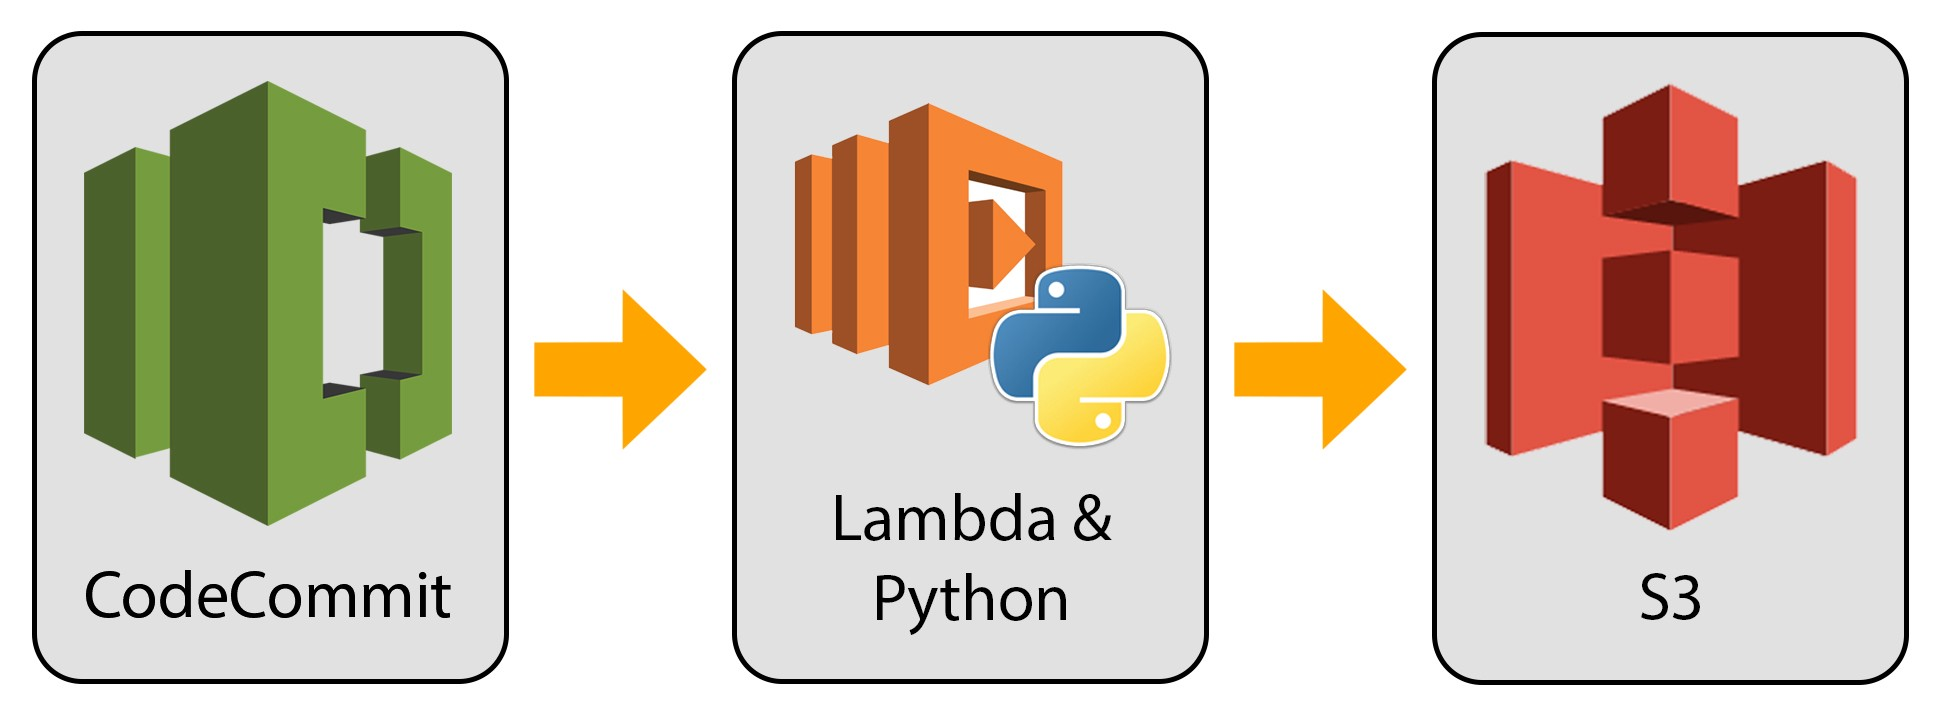 Using AWS CodeCommit and Lambda for automatic code deployment to S3